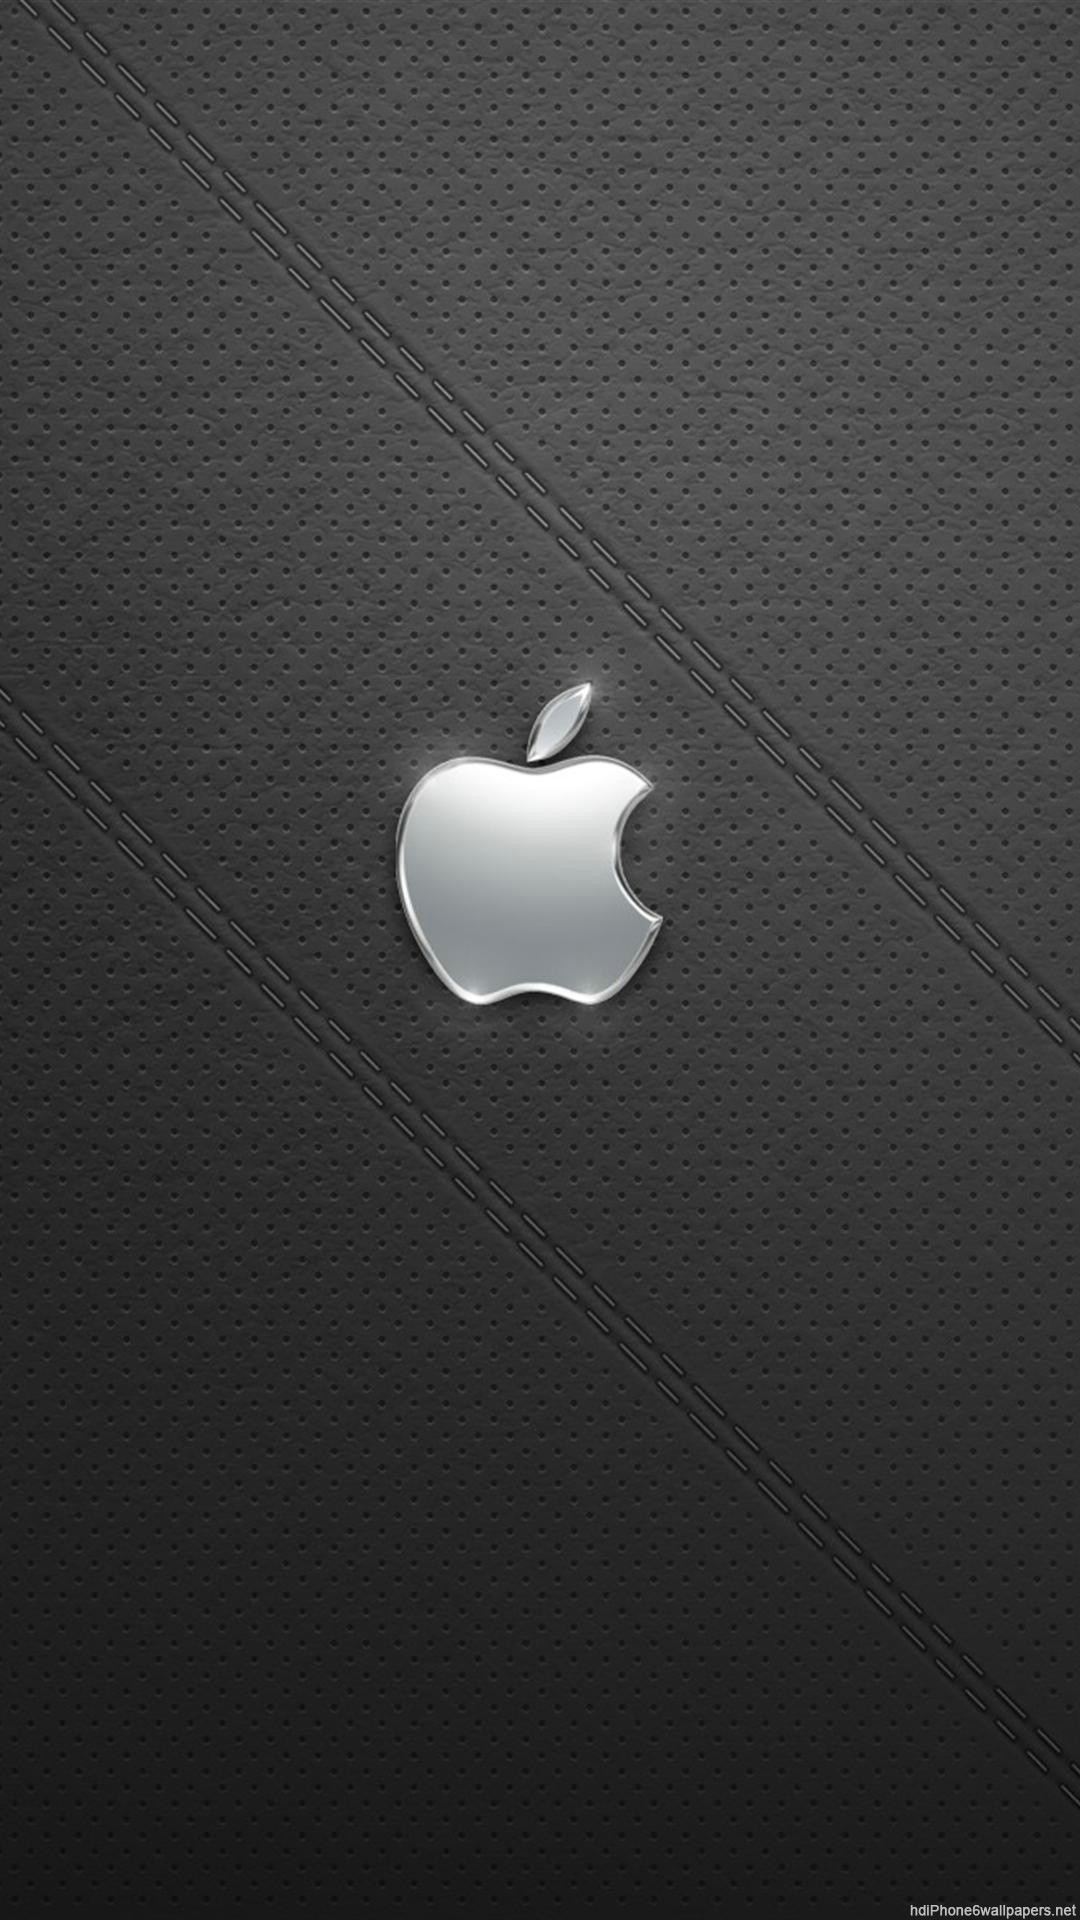 apple iphone wallpaper hd apple wallpapers 1080p 70 images 4264